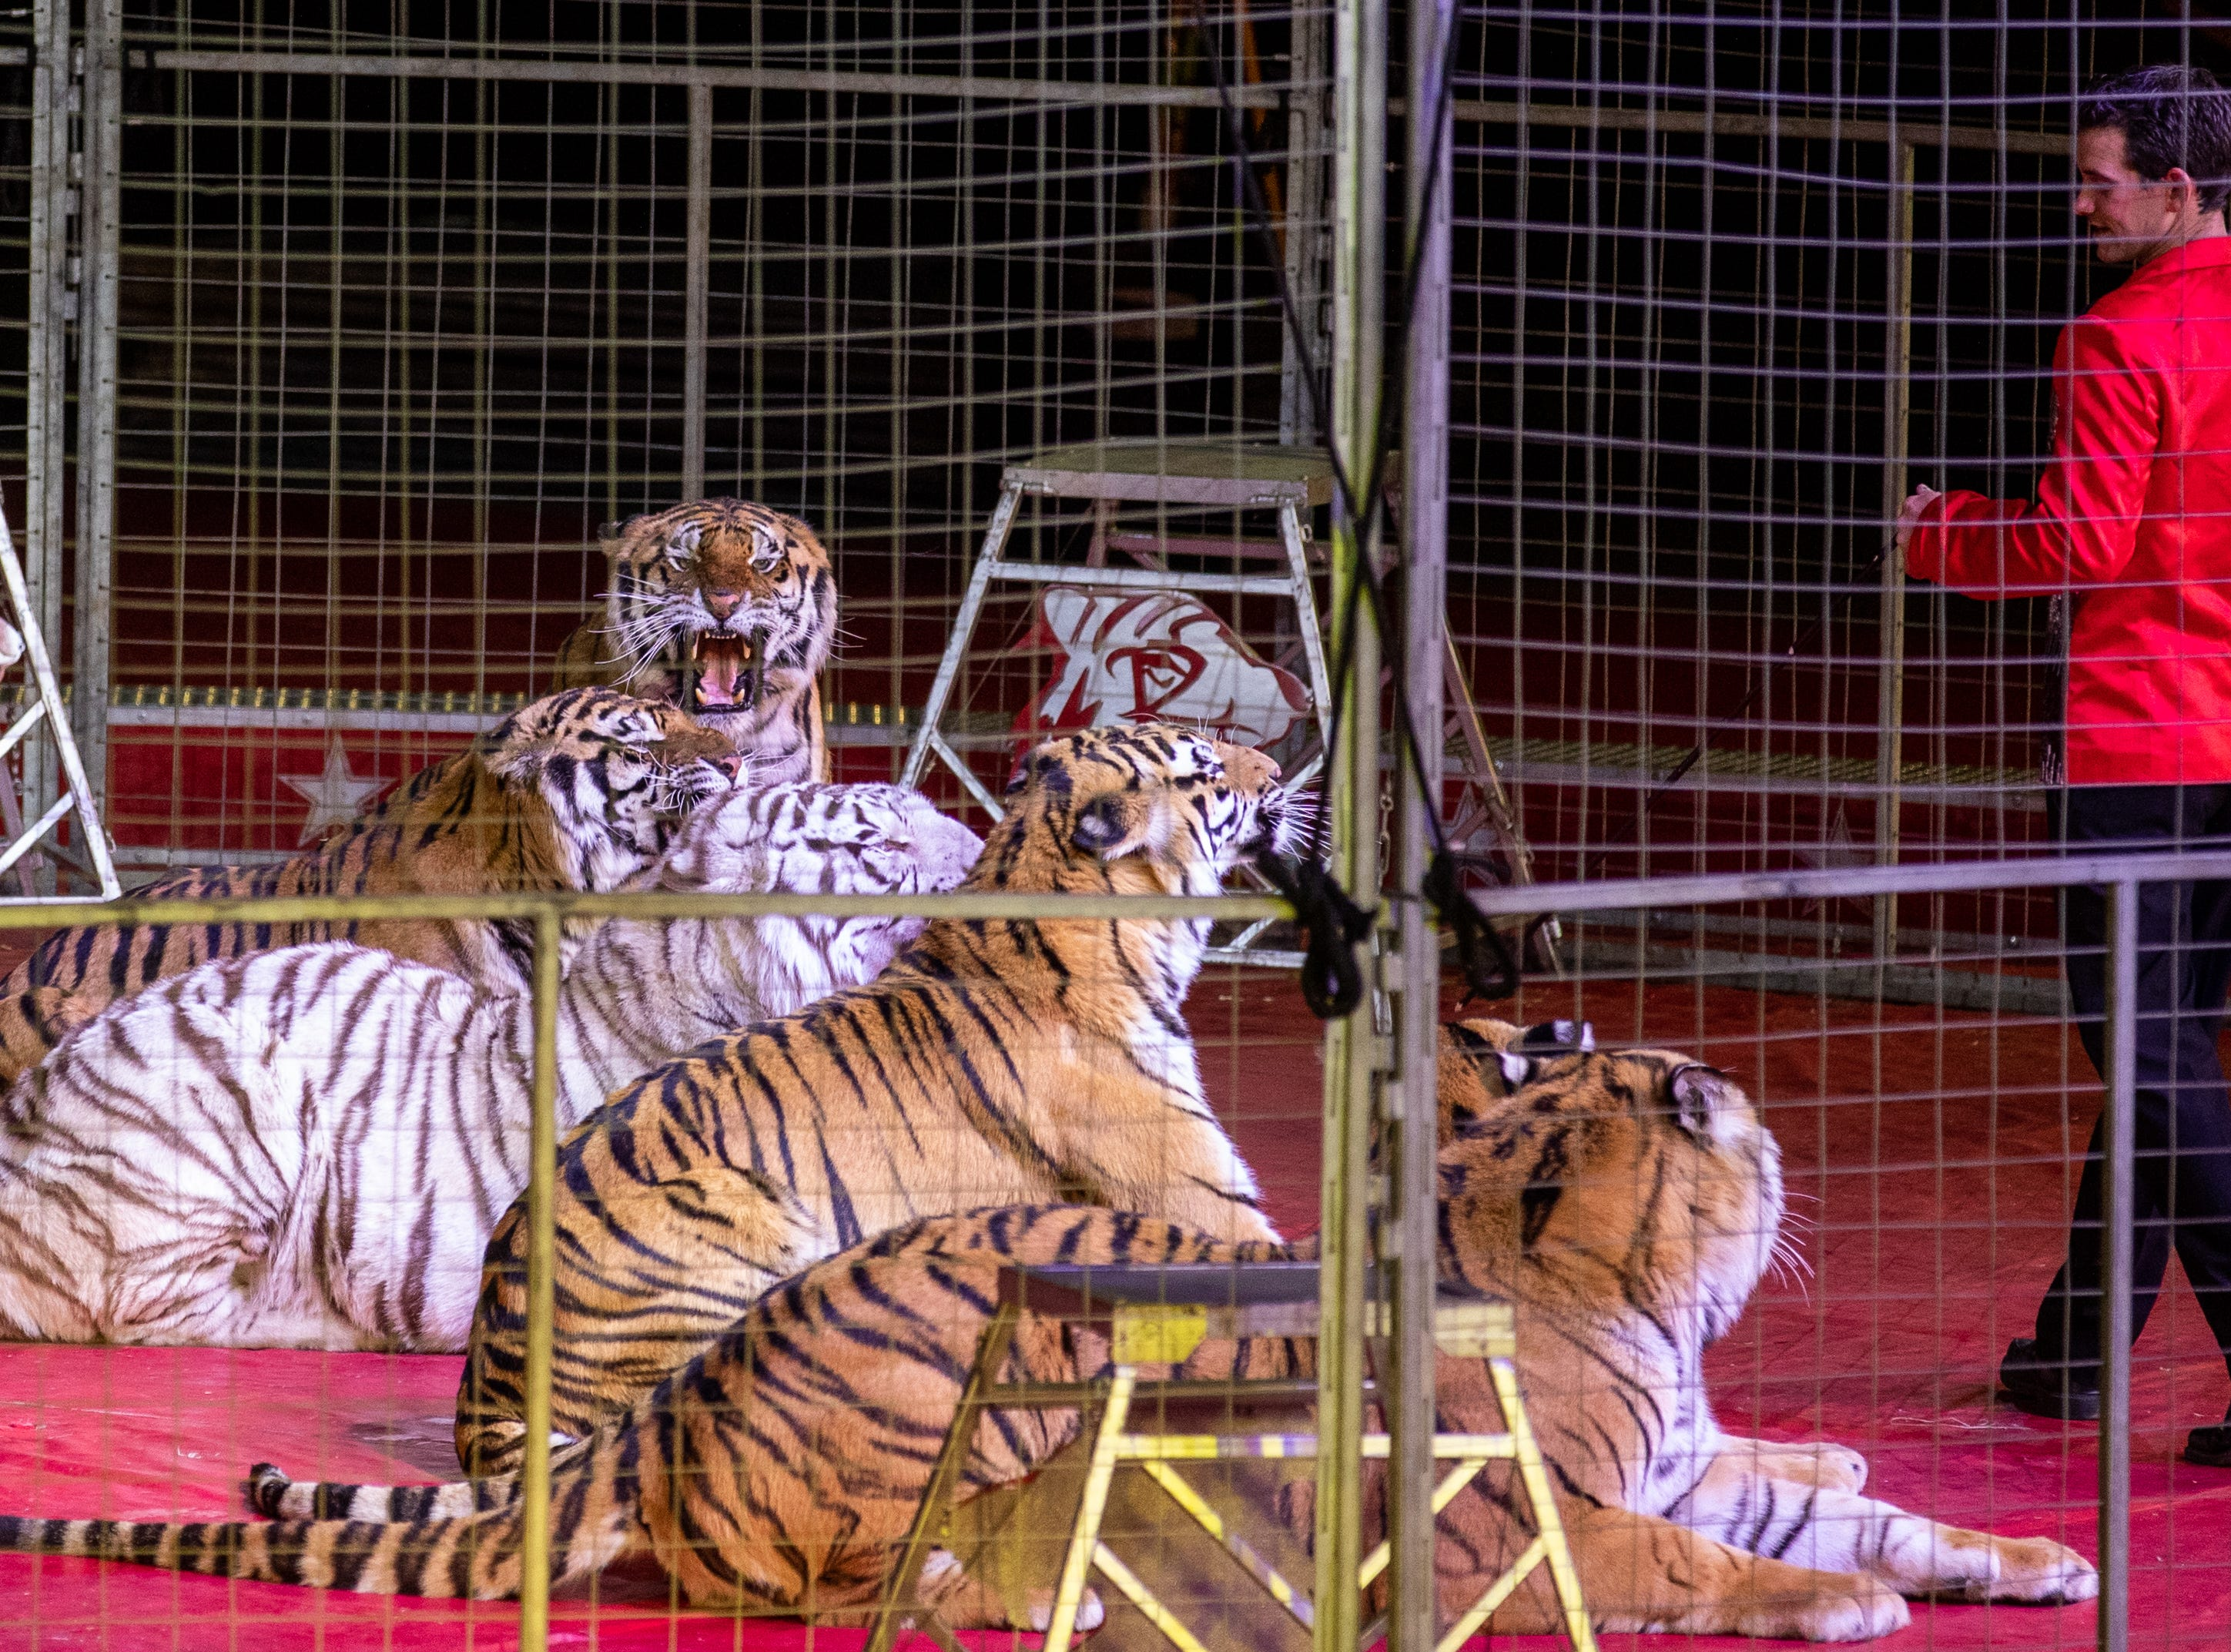 Tigers lay in front of the tiger trainer, Saturday, Feb. 9, 2019 in Louisville Ky.